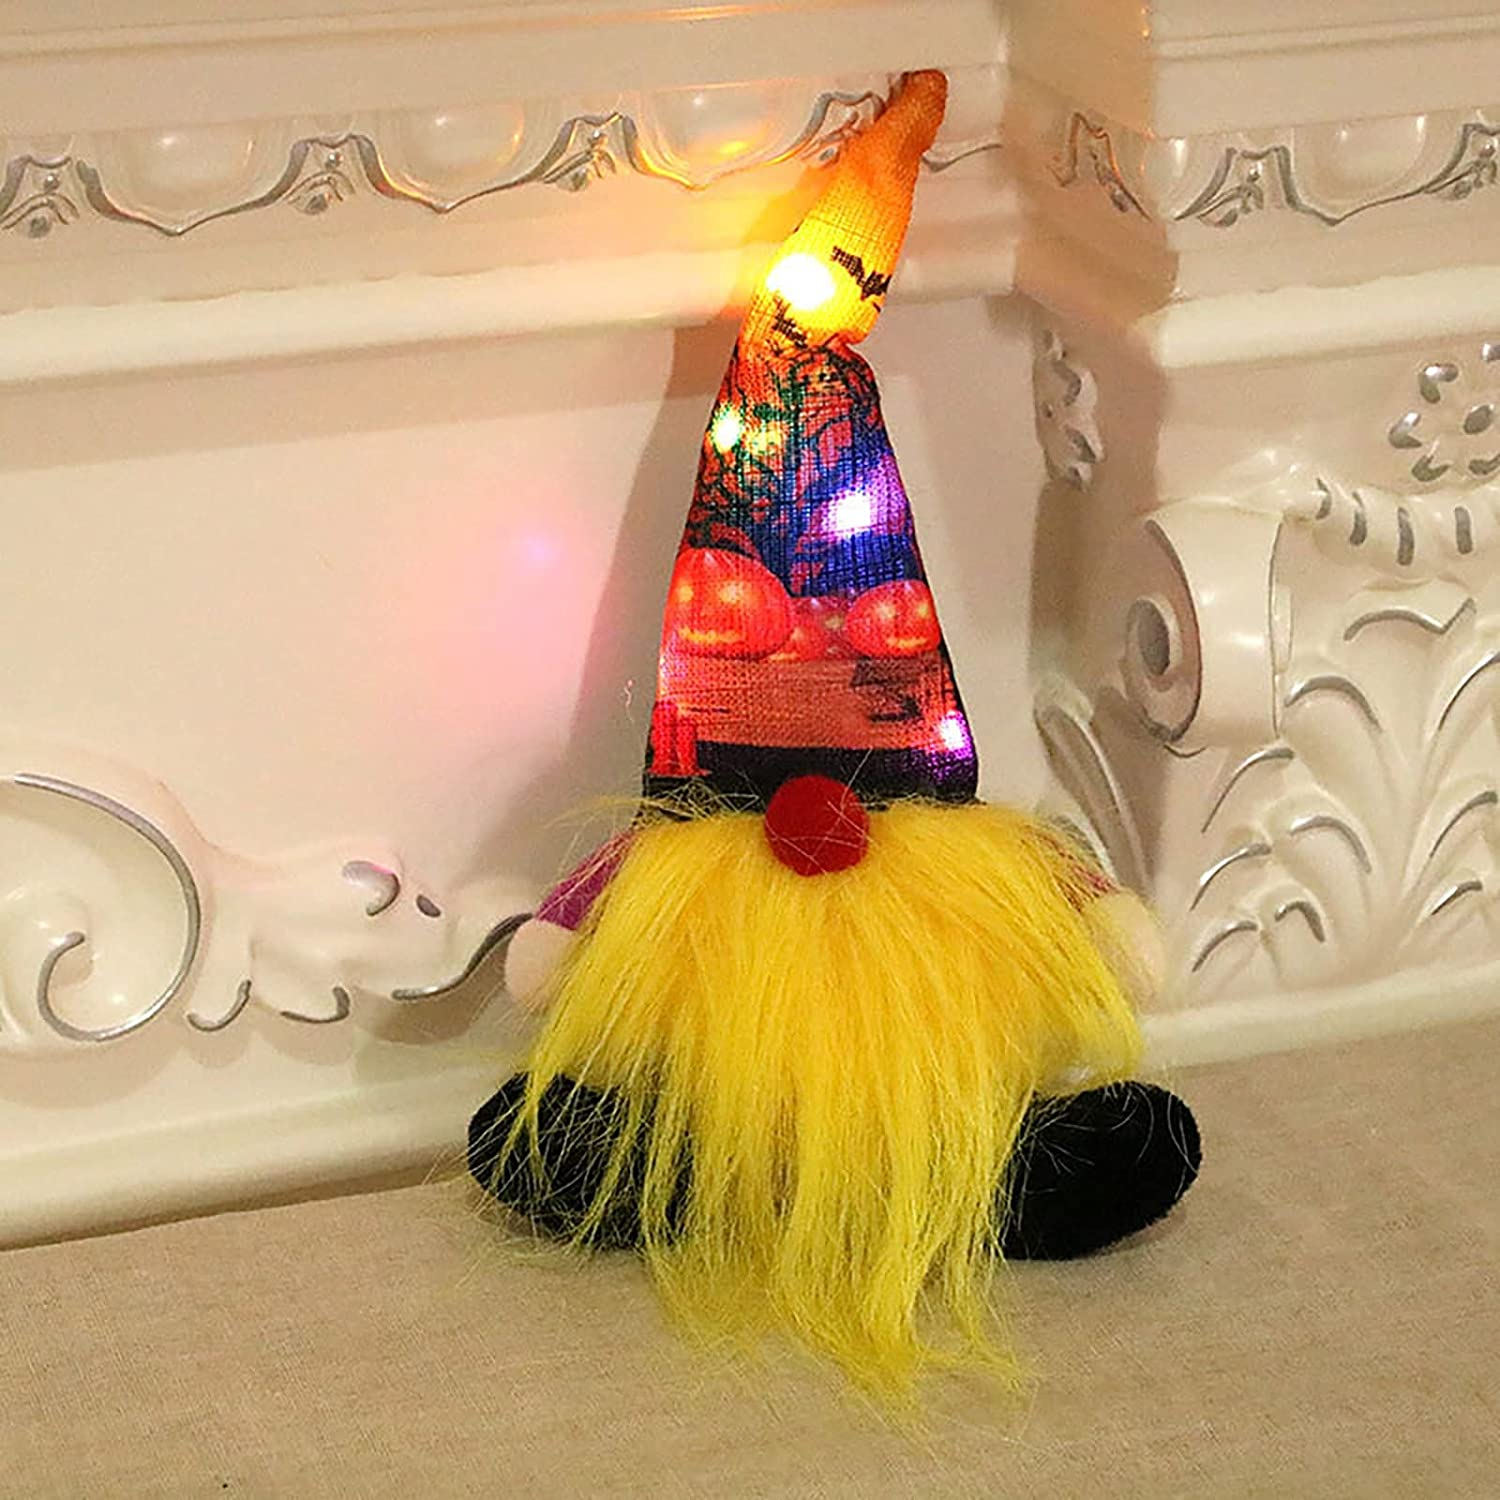 Horryar Halloween Gnomes Luminescent Light Home Dwarf Ornaments In a popularity Al sold out.